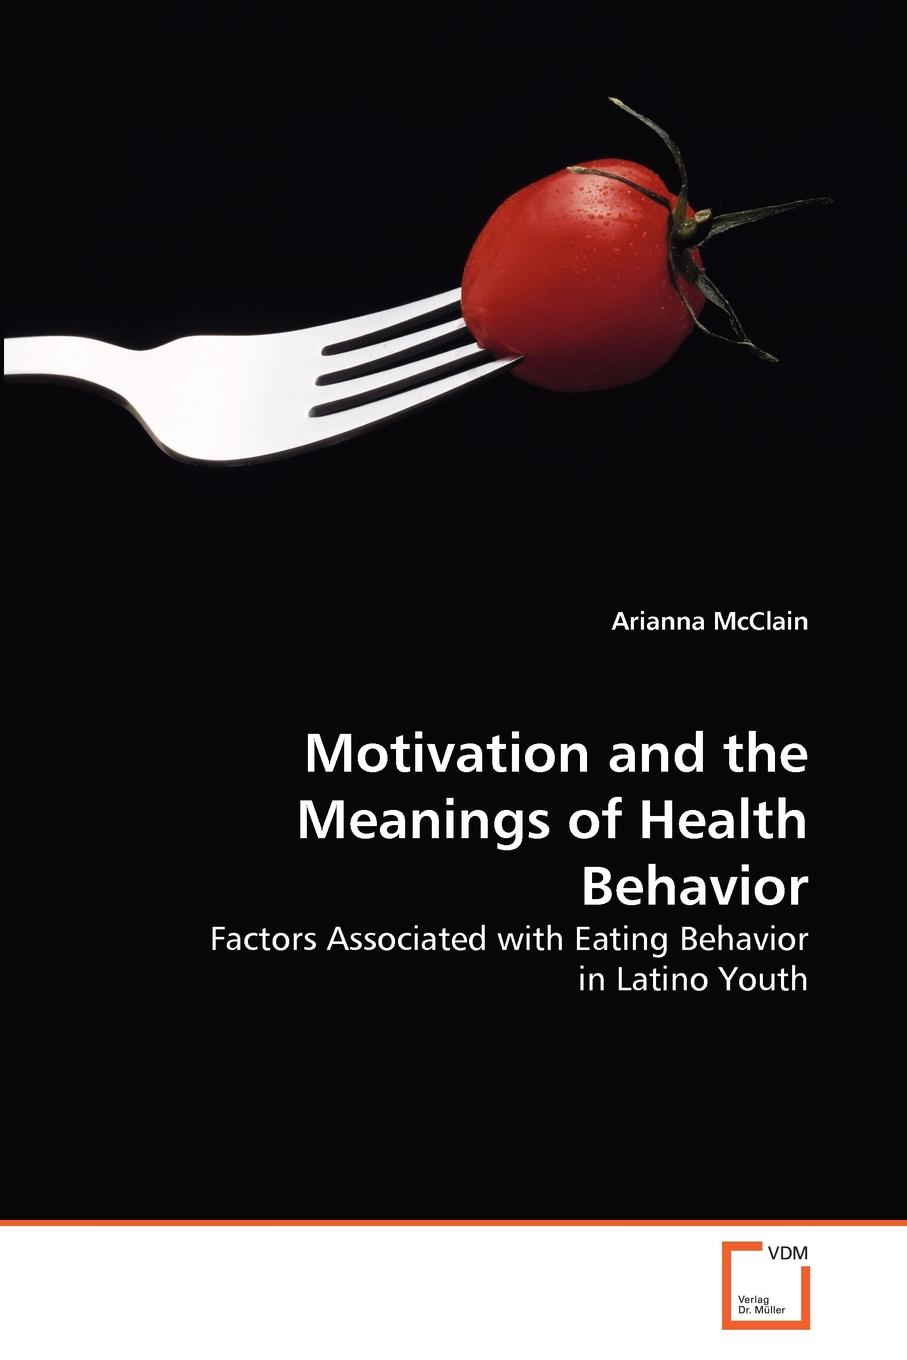 Arianna McClain Motivation and the Meanings of Health Behavior